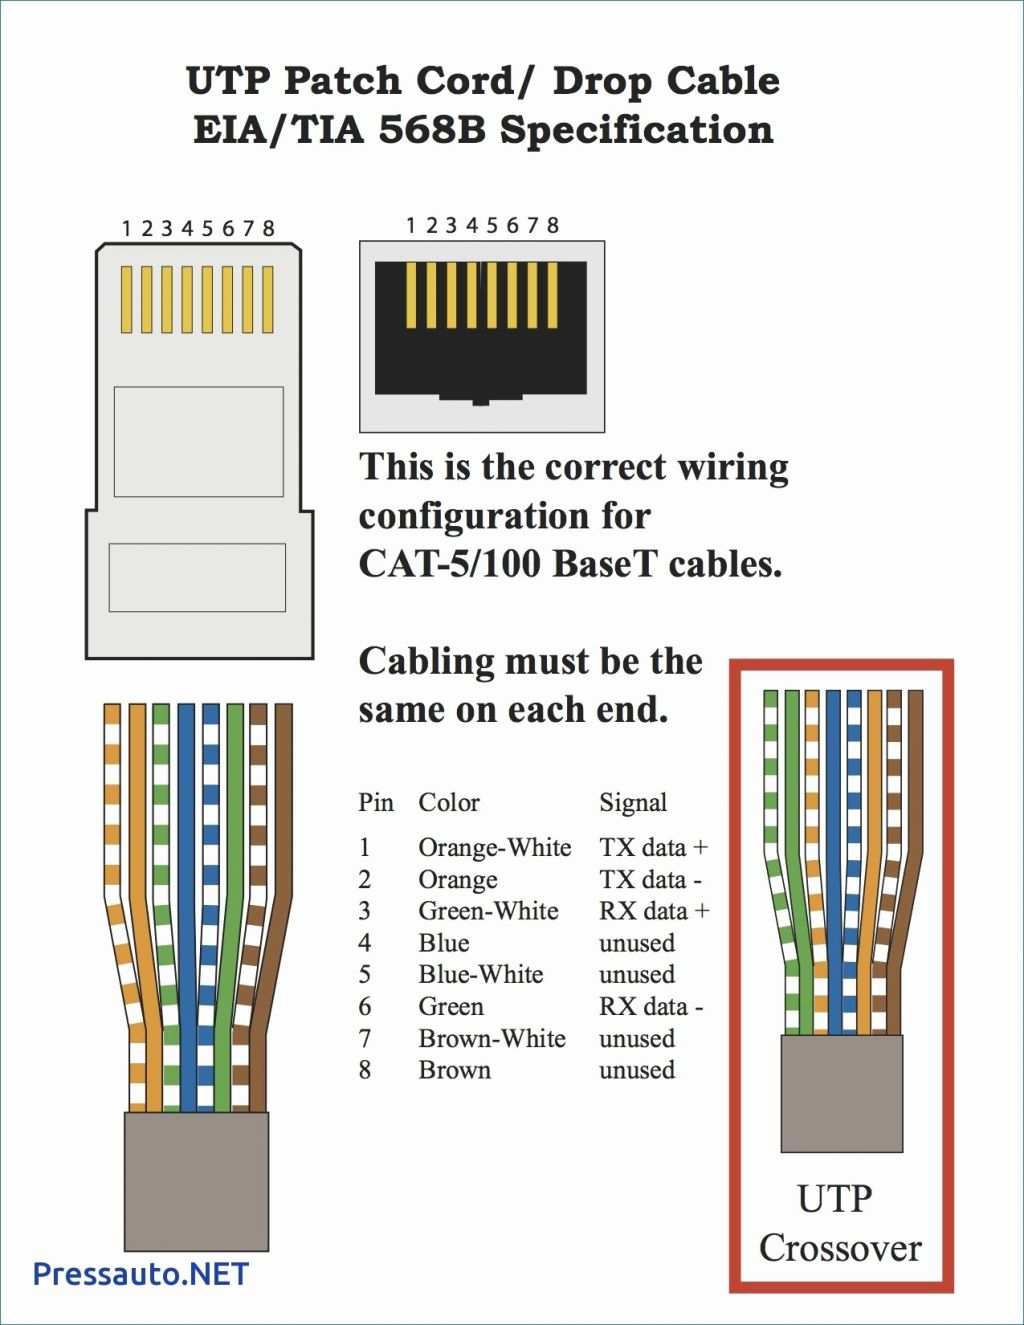 att uverse cat5 wiring diagram Collection-Att Uverse Wiring Diagram Fresh Epic Cat 5 Wiring Diagram B 25 Hdmi Wire Color With And 15-p